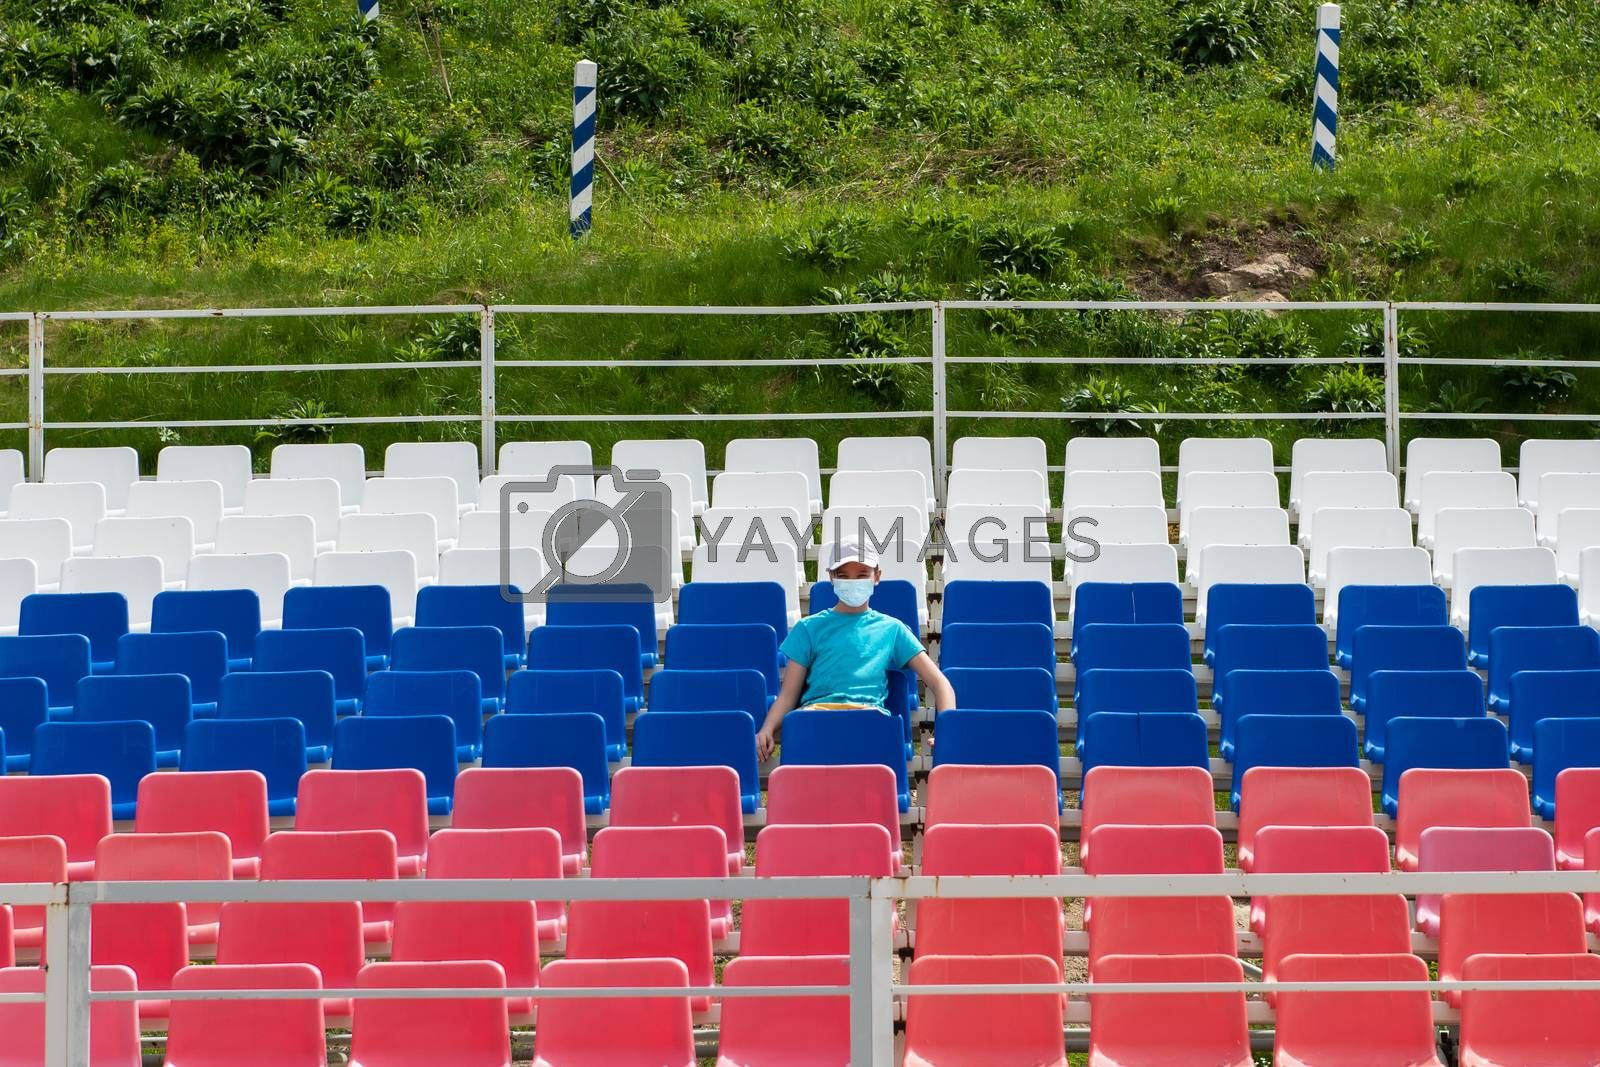 Lonely boy in protective mask on the empty stadium outdoor. Empty tribune due to pandemic Covid-19. Concept of pandemic life , empty stadiums, distance from viewers, safety.